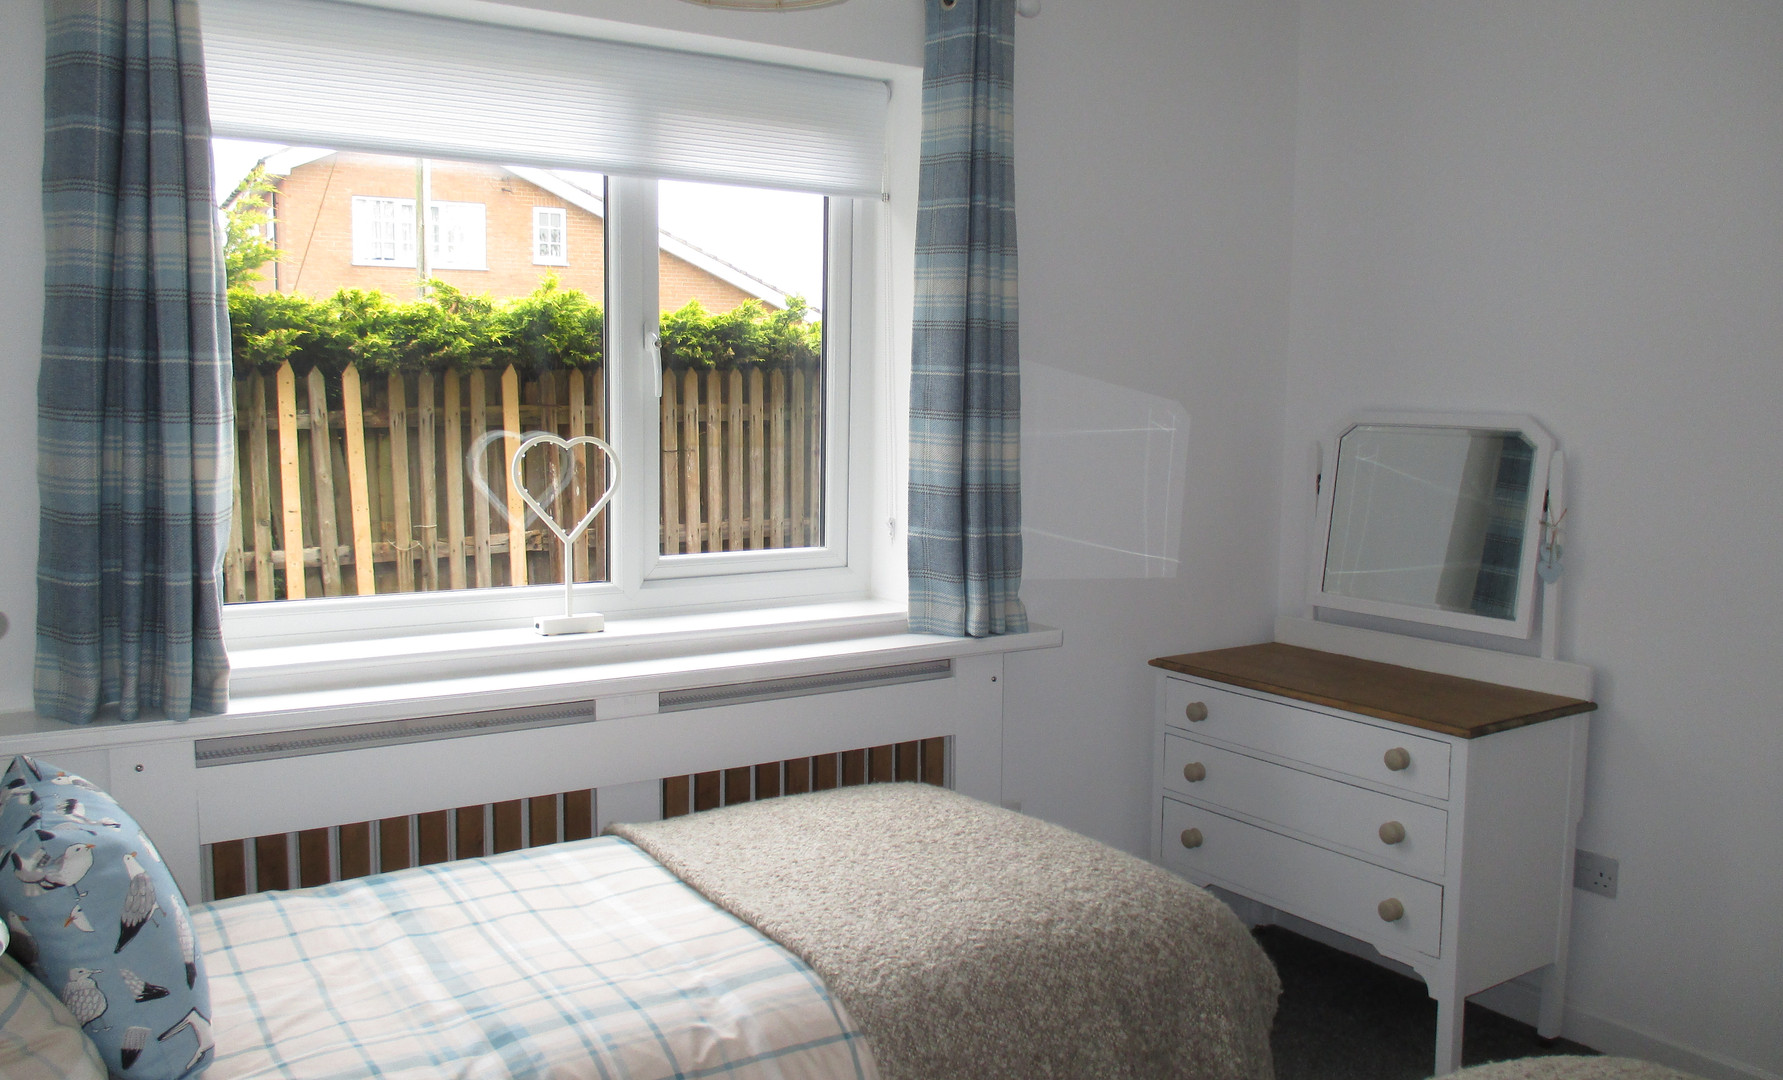 Second bedroom with dressing table